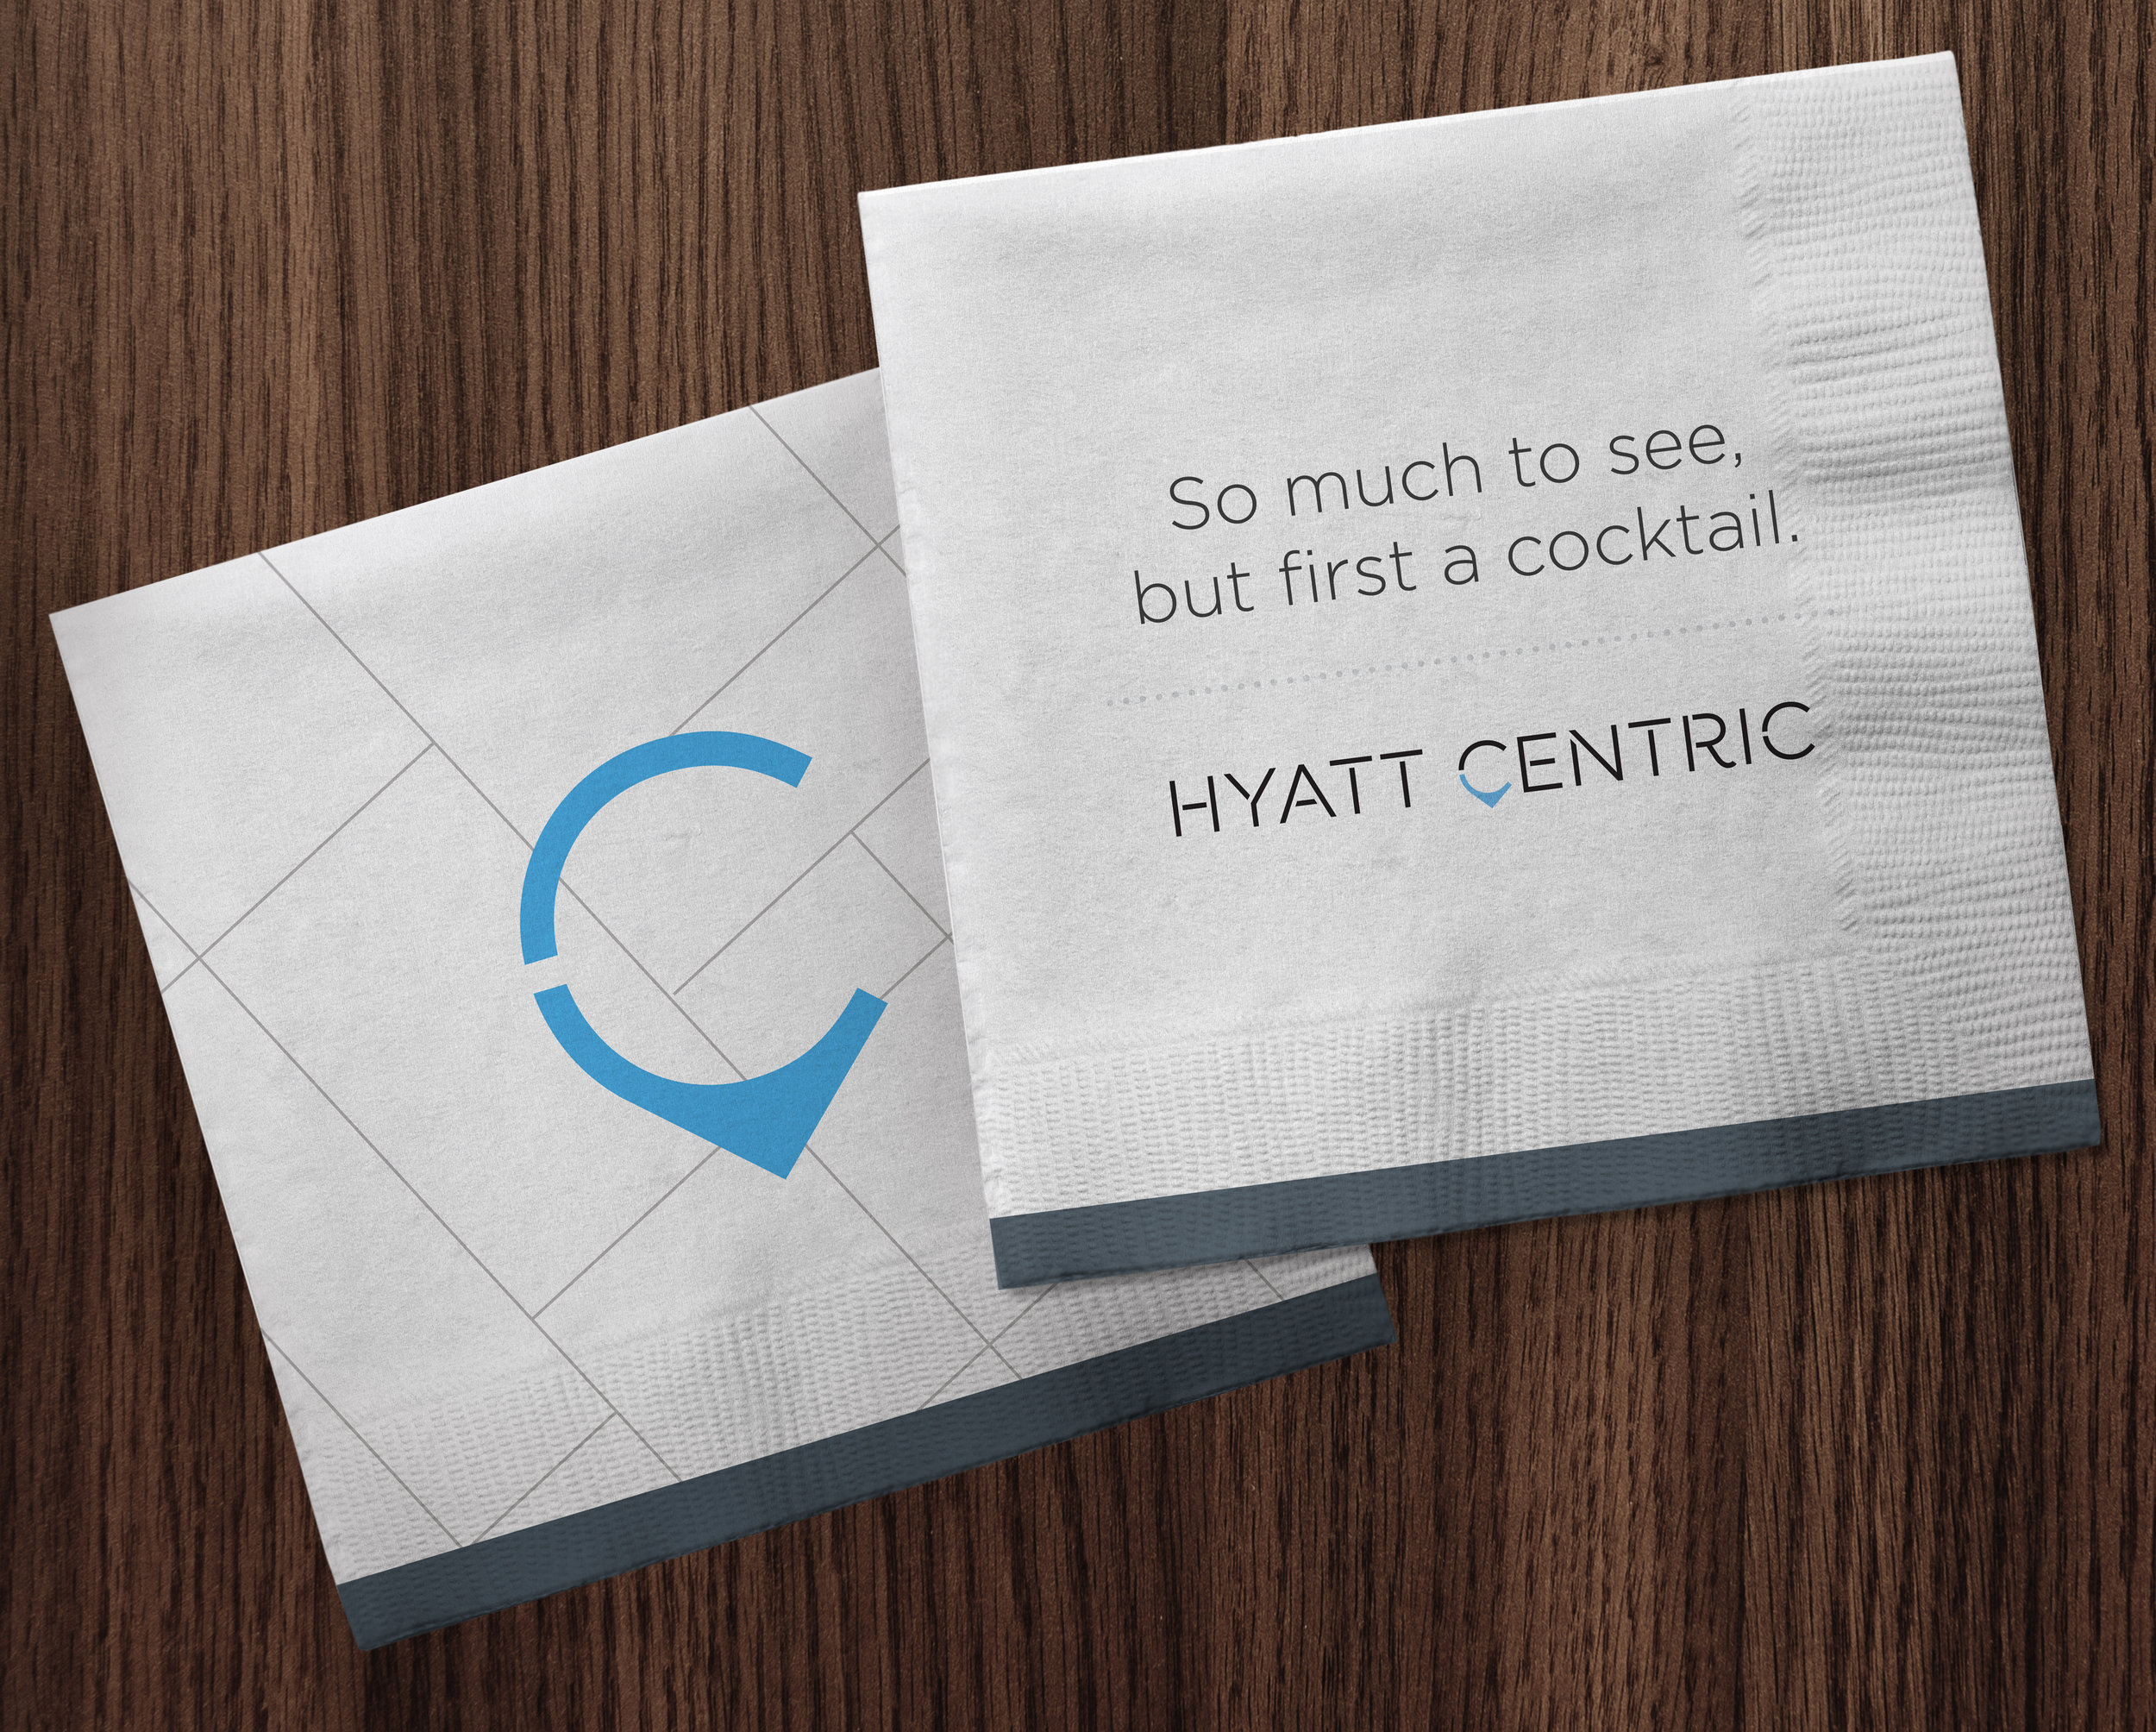 Hyatt Centric branded materials by OMIH ad agency